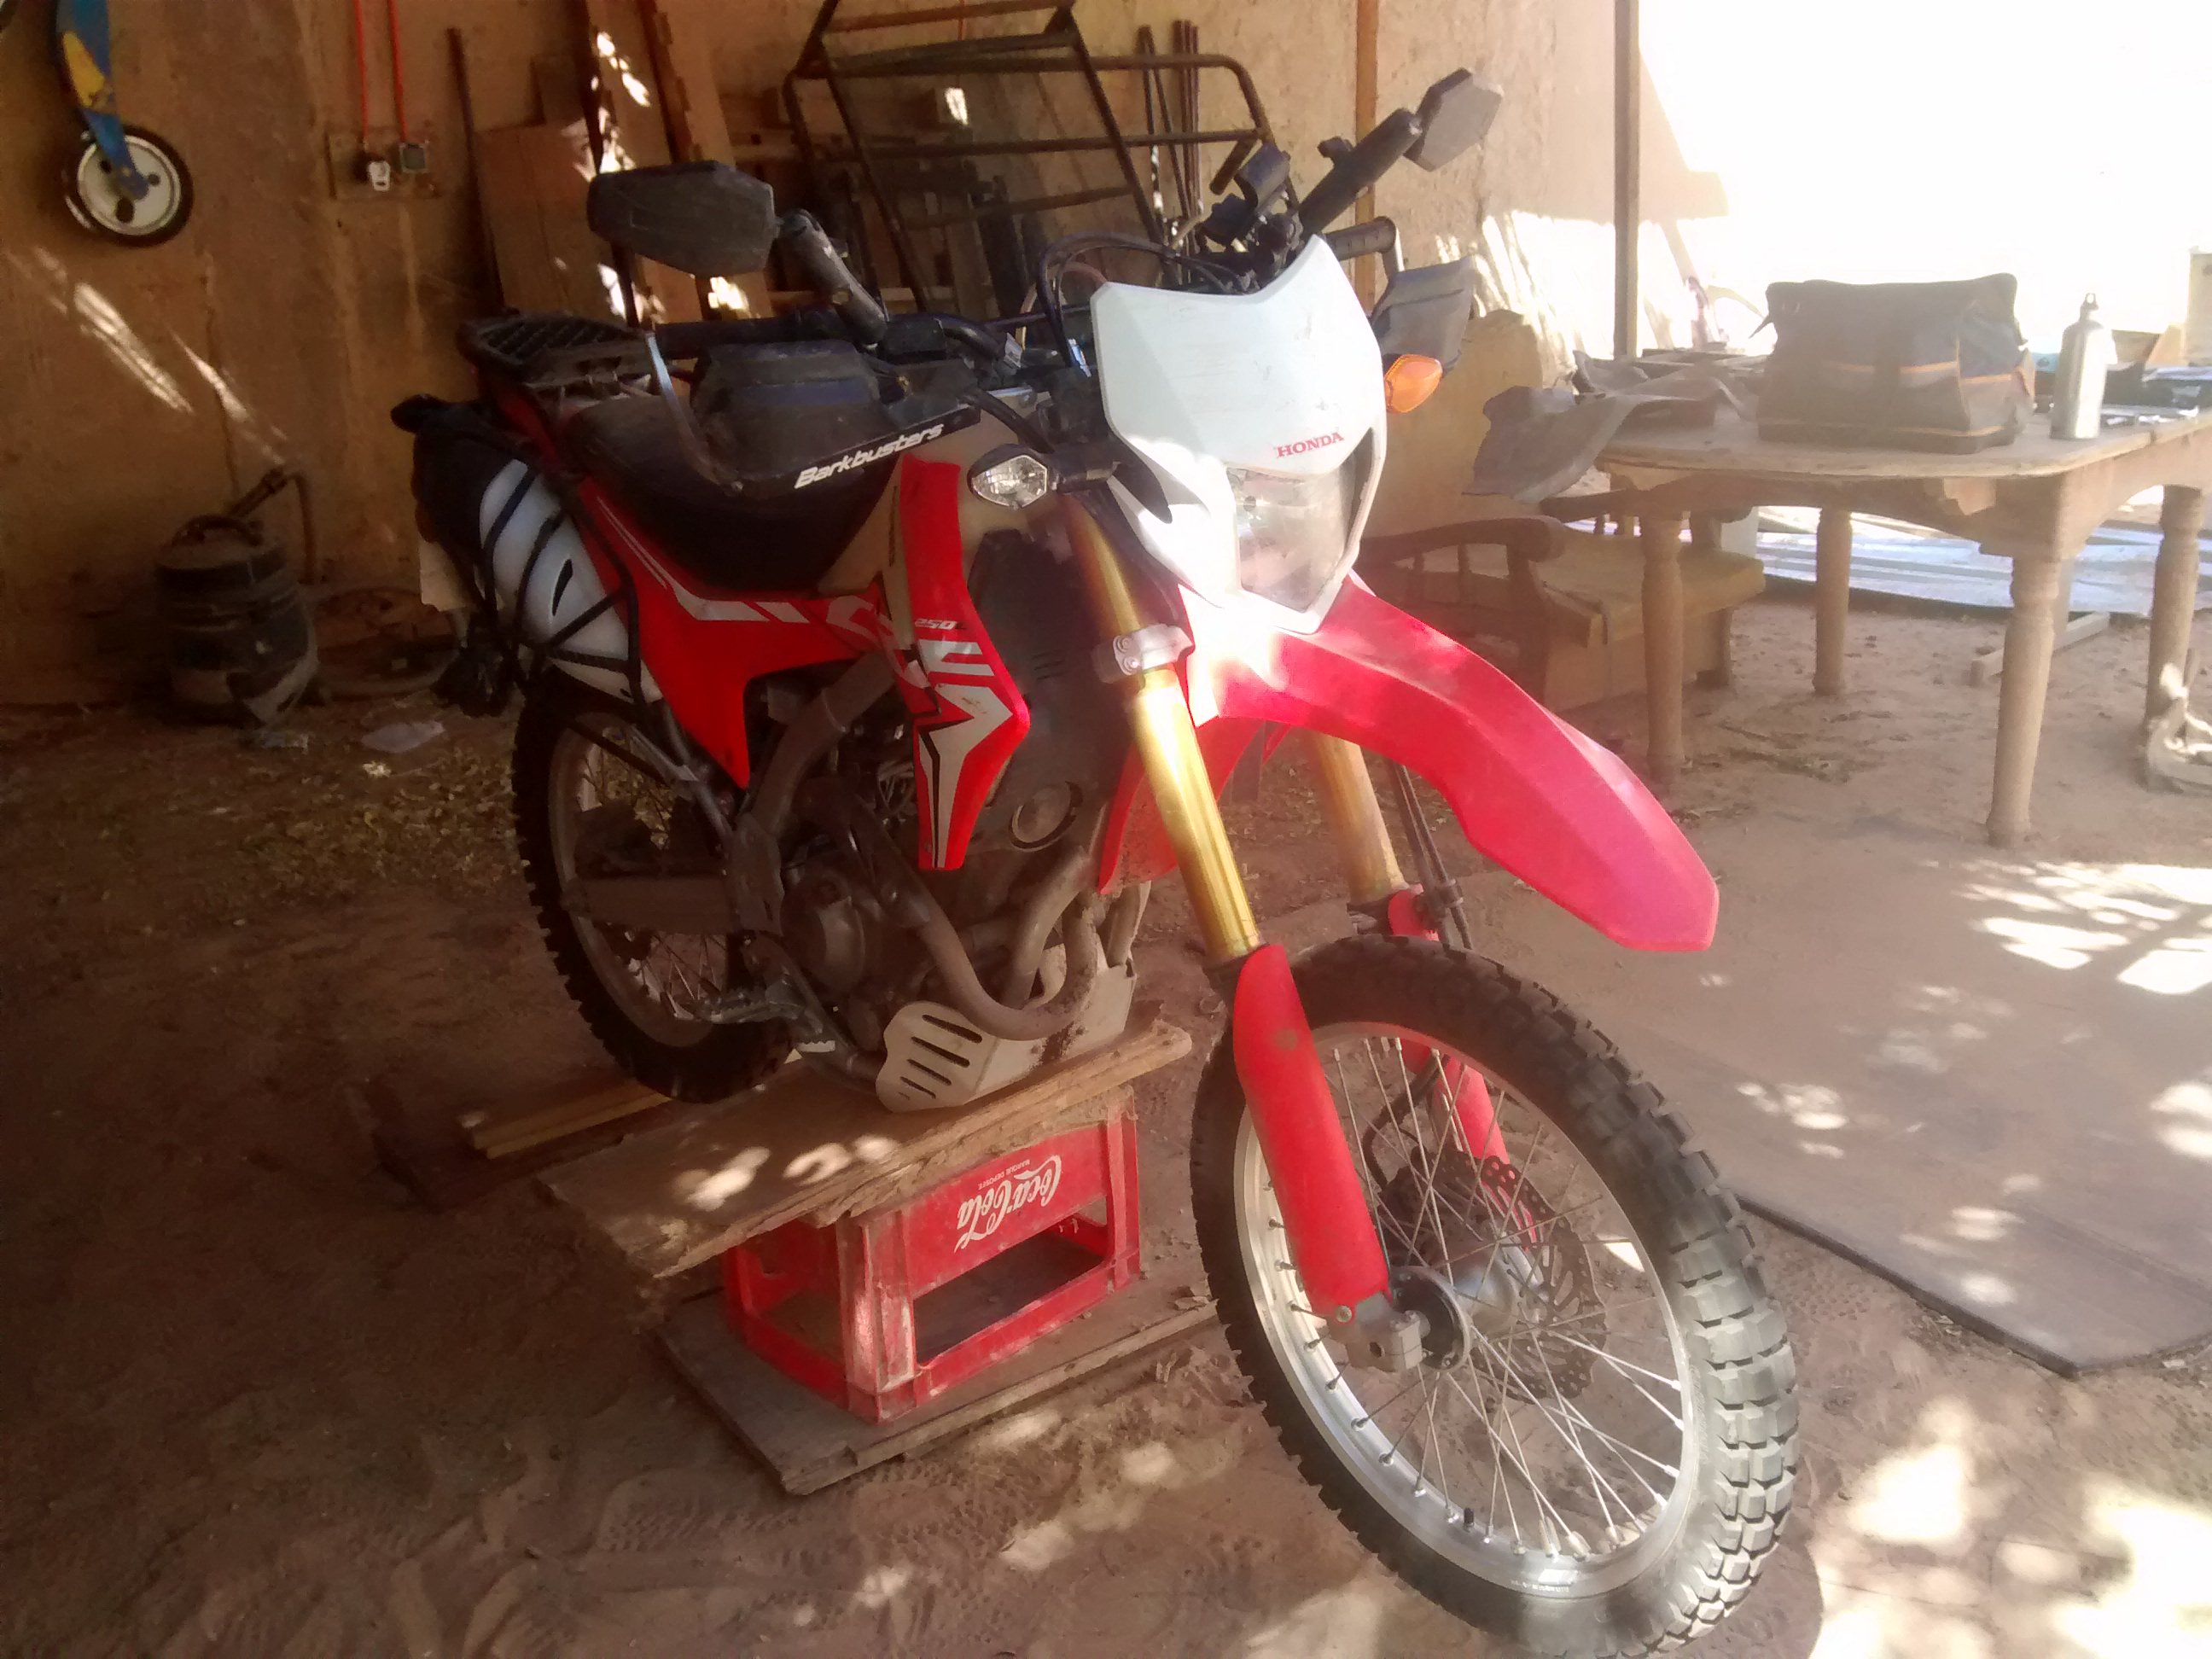 Honda CRF250L on makeshift stand to repair front rim.